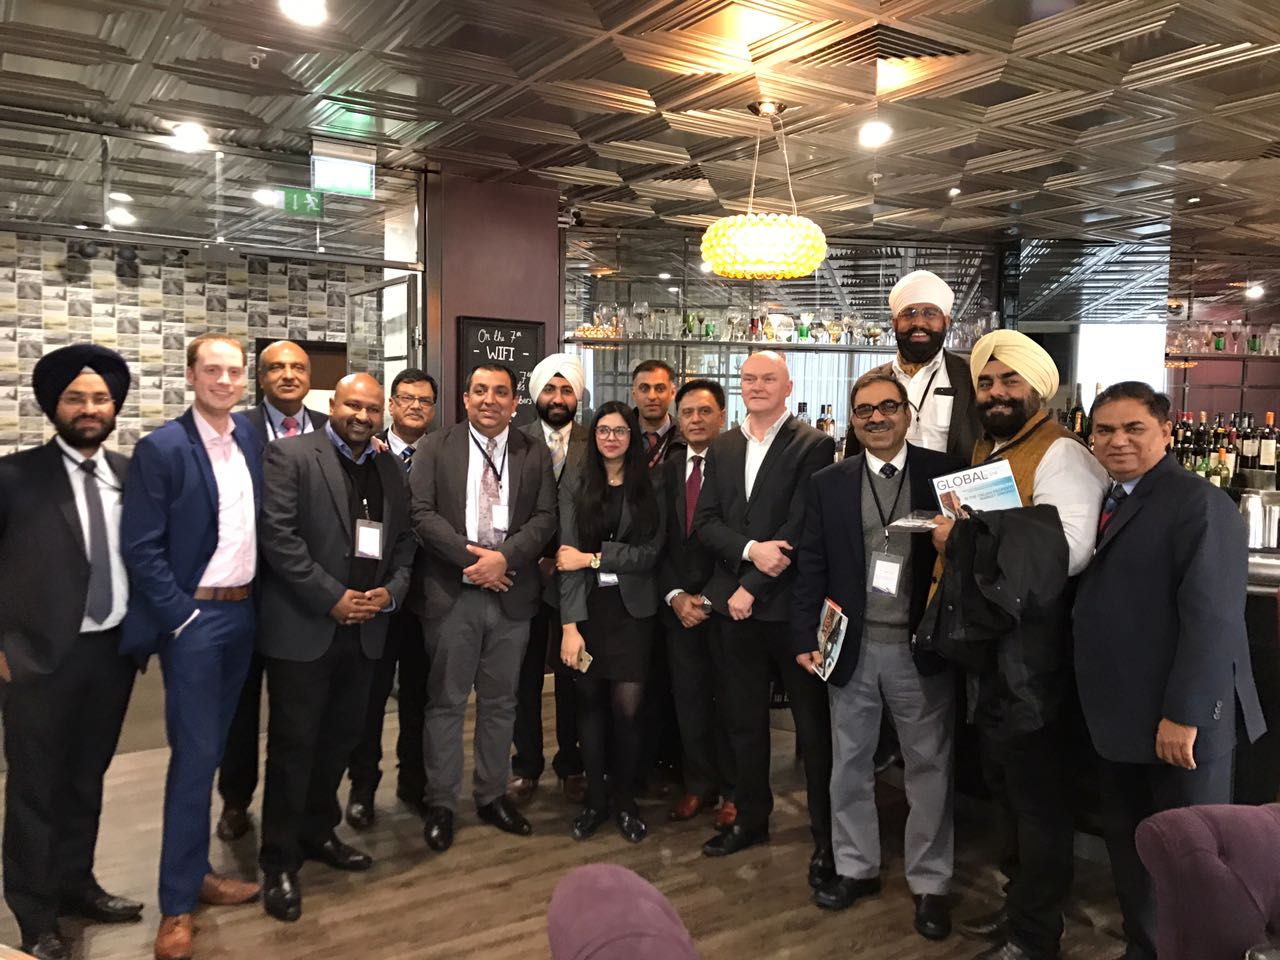 Chandigarh IT CEO Mission UK 2017